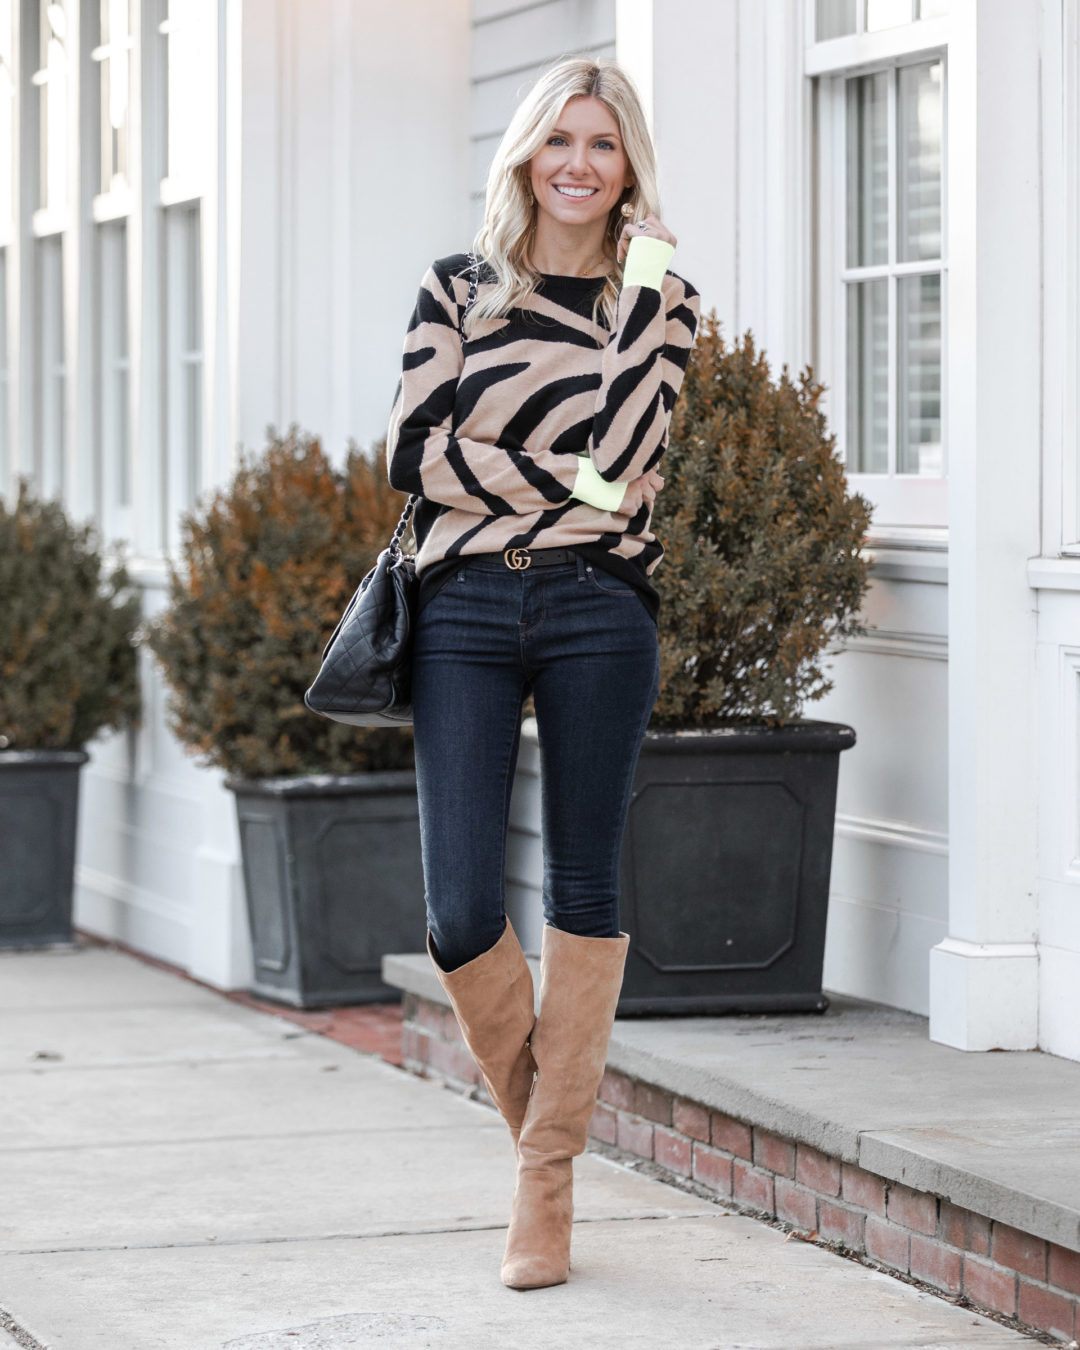 casual-zebra-outfit-with-neon-green-sleeves-the-glamorous-gal